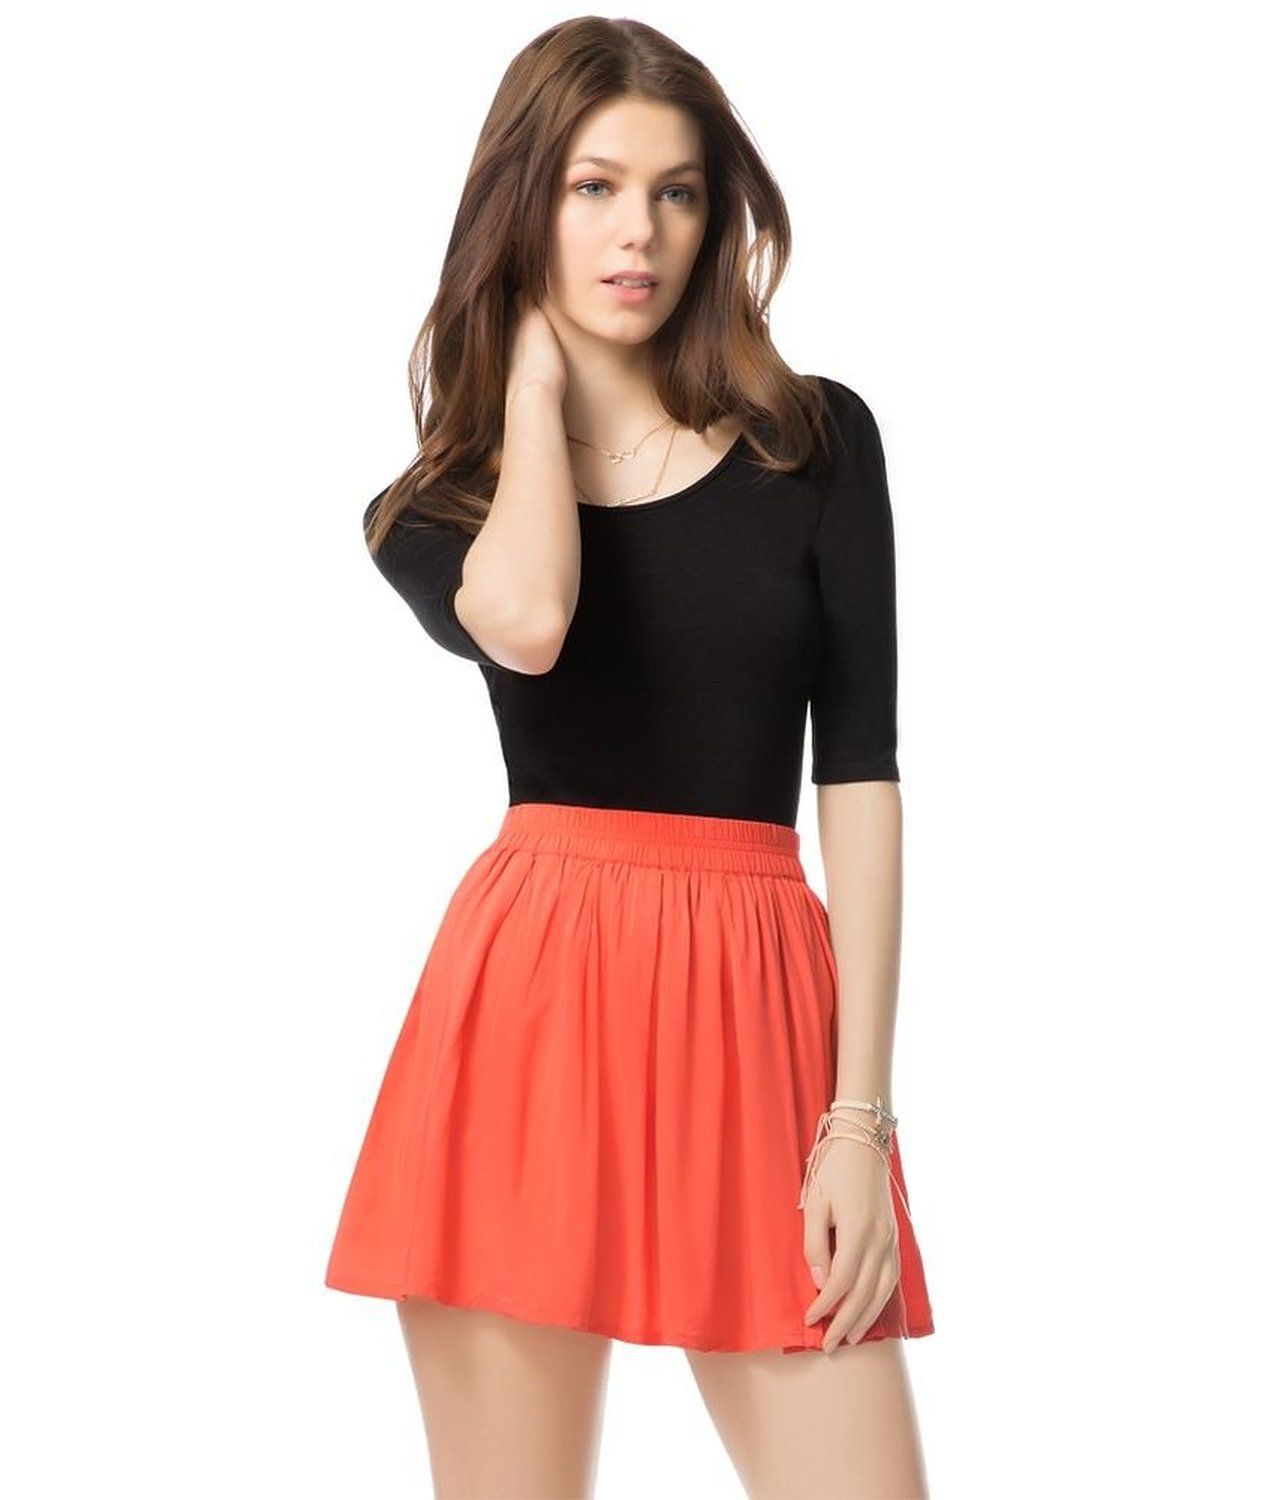 amazoncom aeropostale juniors flippy pleated skirt clothing